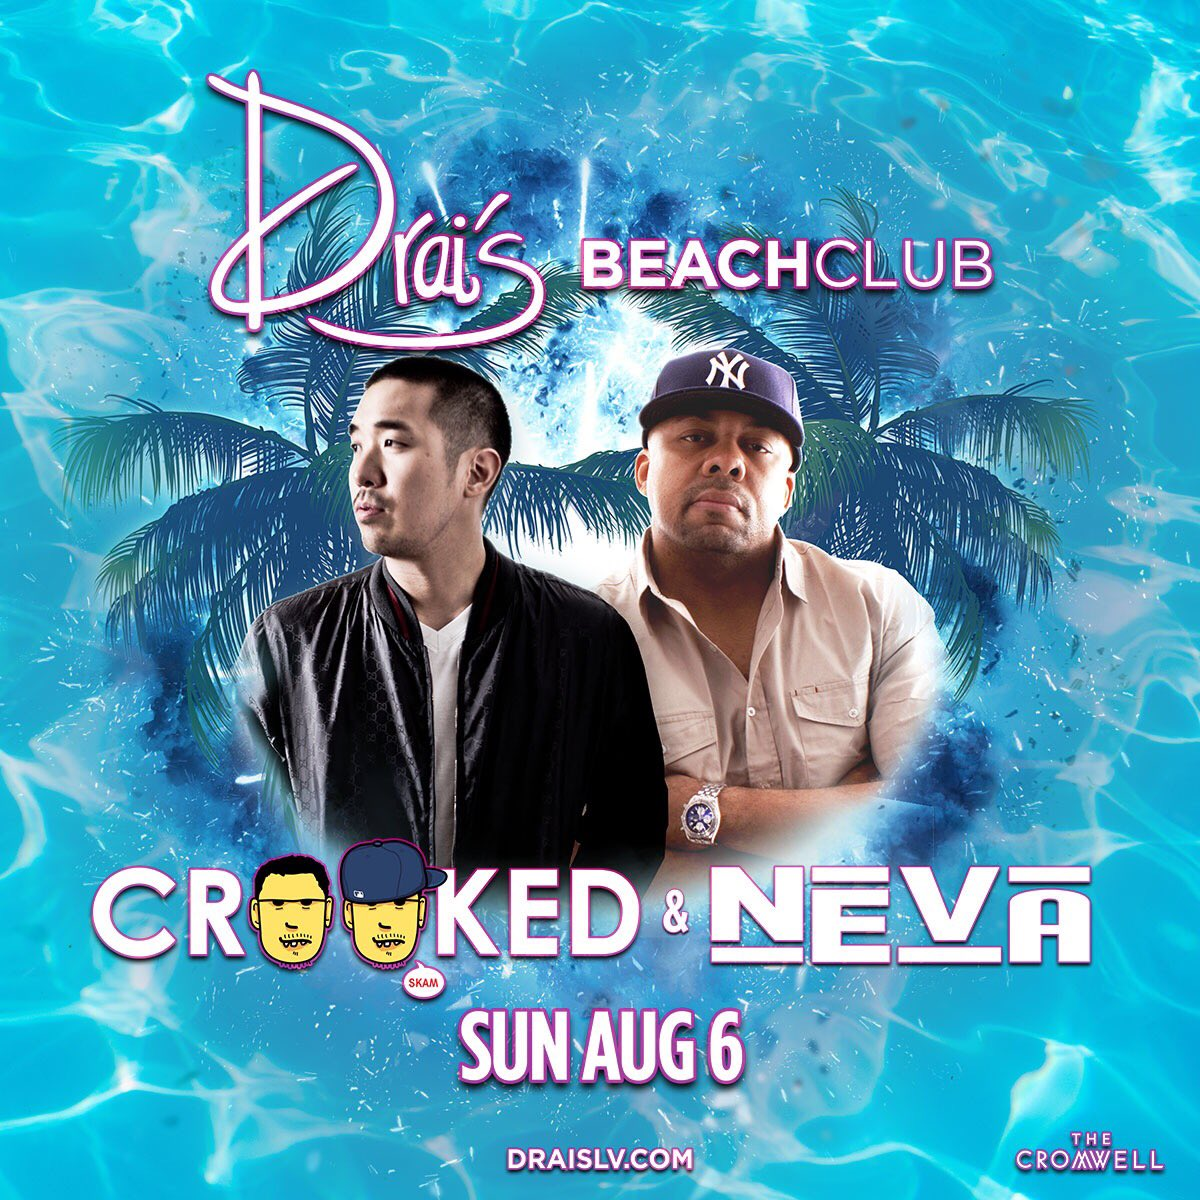 Sunday Pool Party Shenanigans this weekend @DraisBeachclubLV with my brovah @djneva...